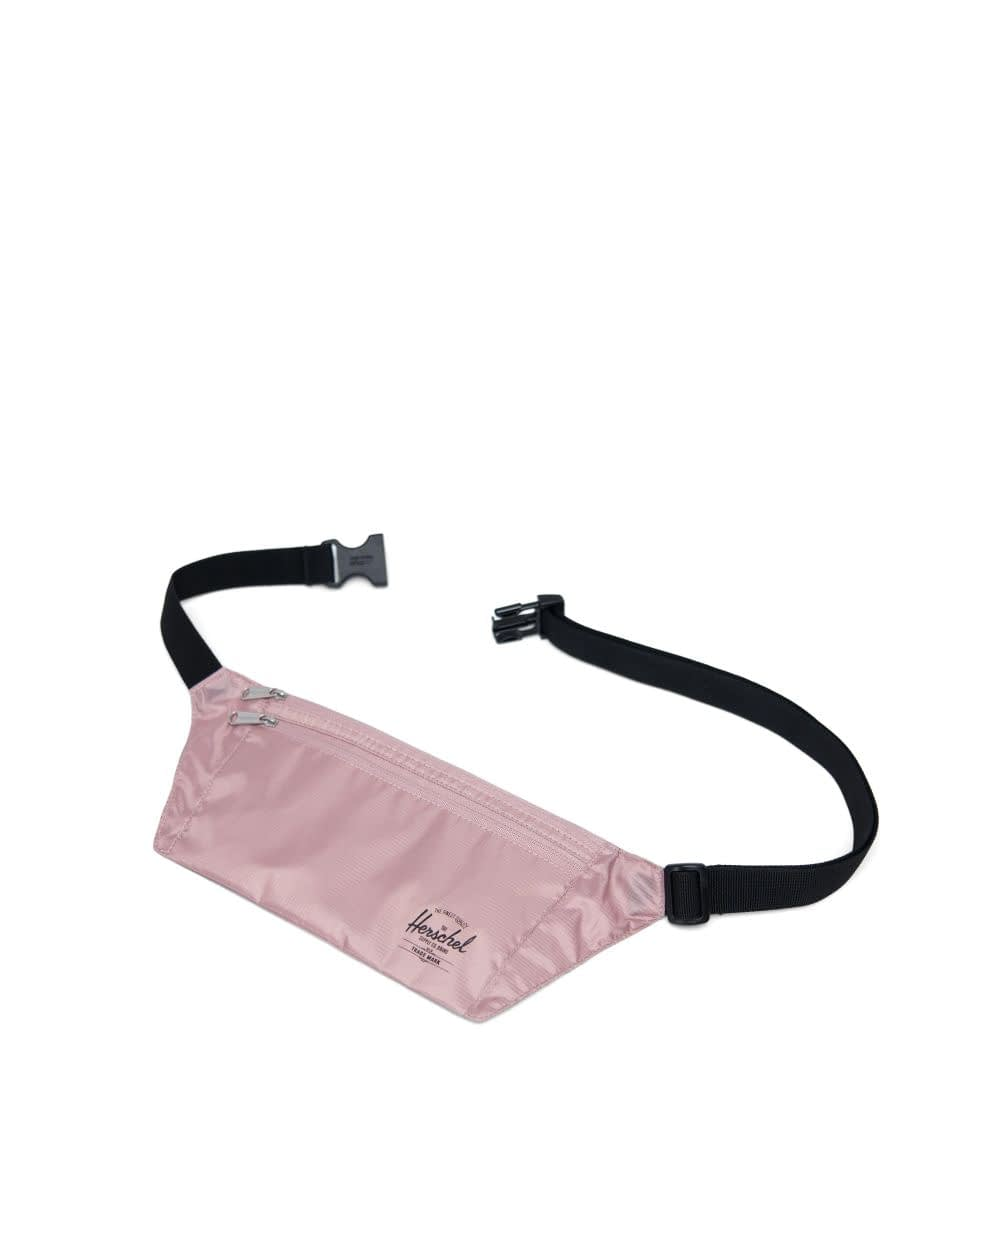 pink waist pouch with black straps